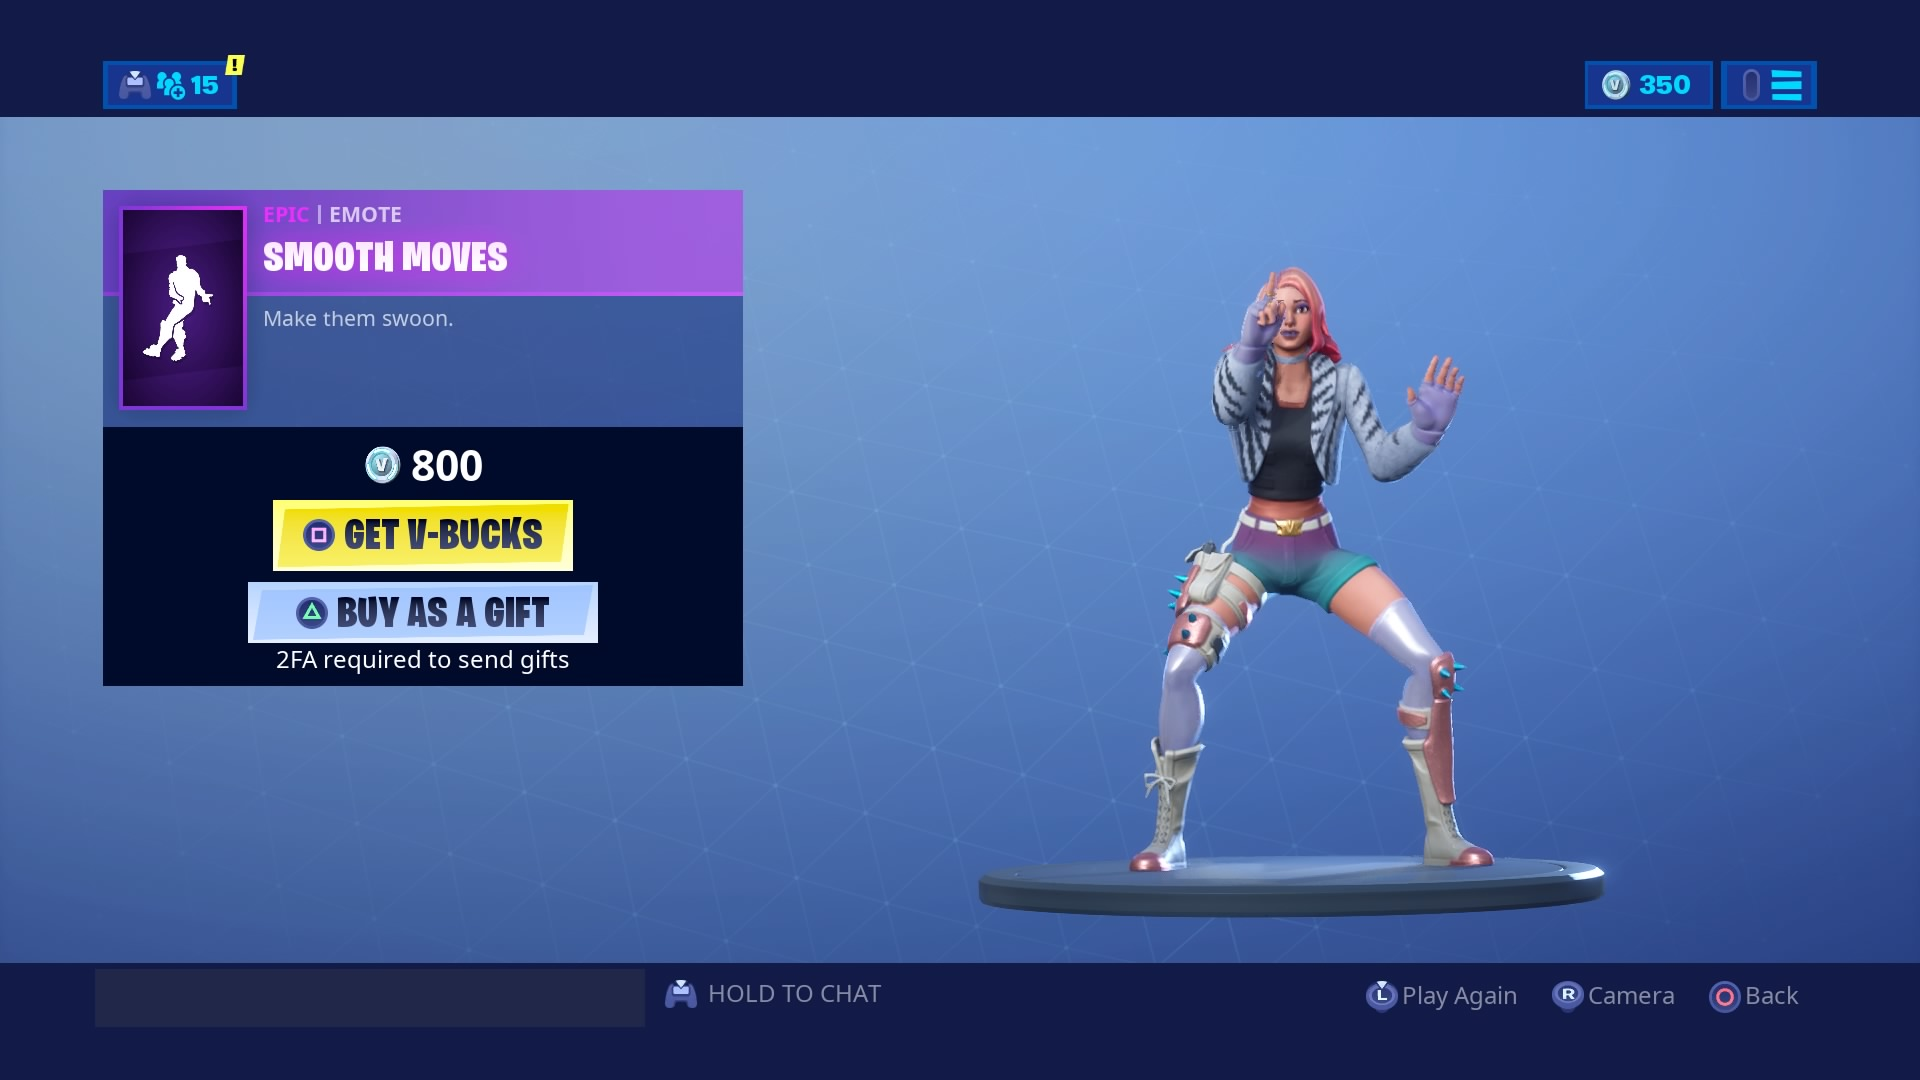 fortnite smooth moves emote hd wallpaper background 2304